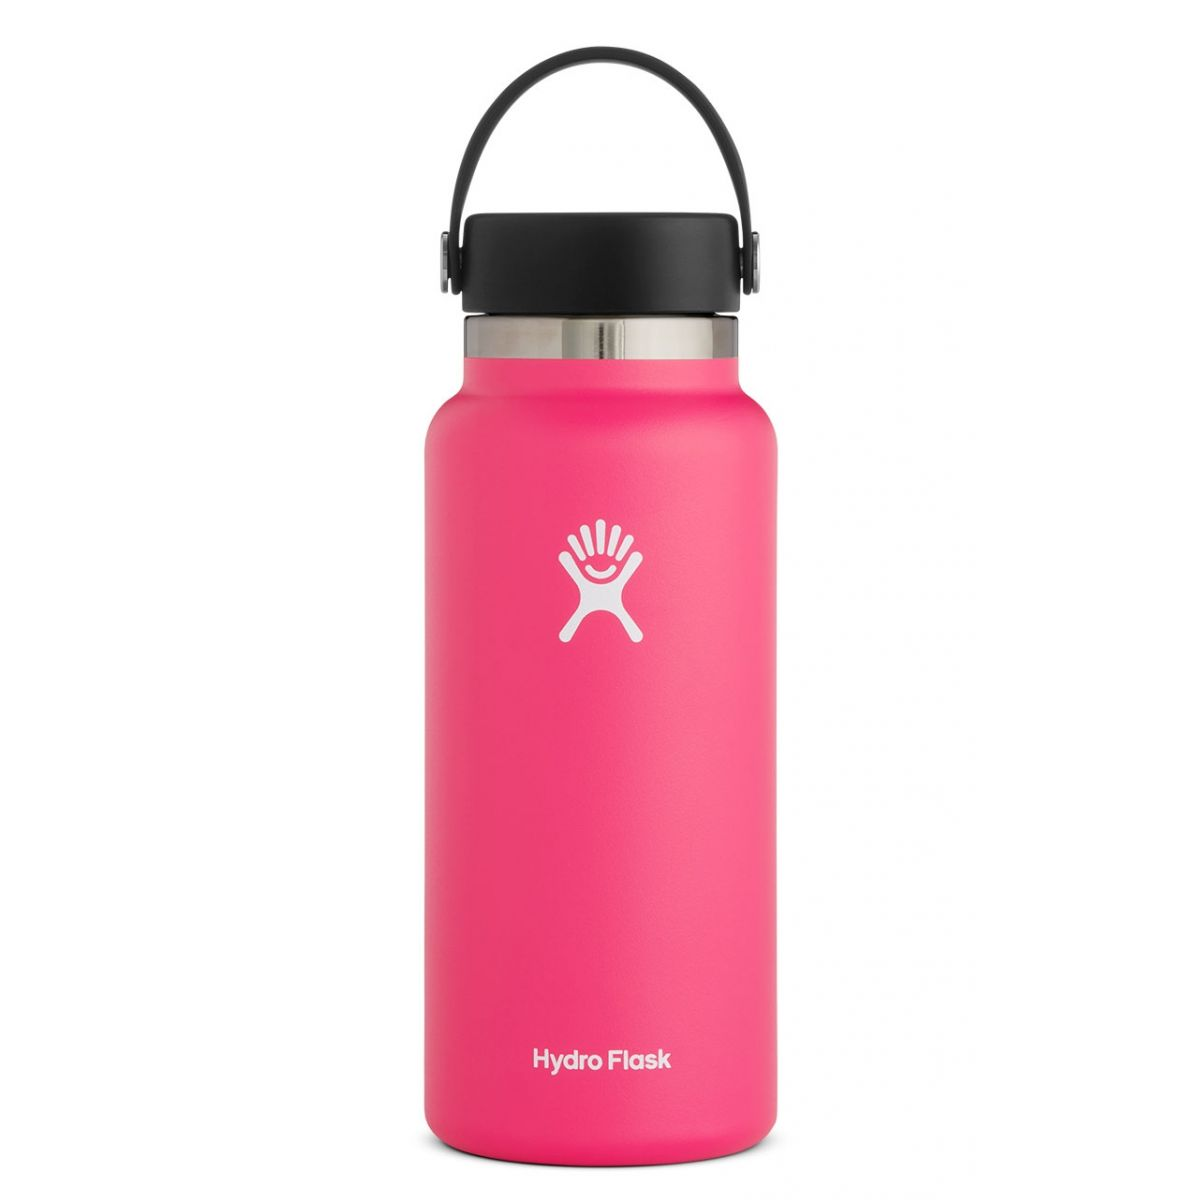 pink water bottle with black lid